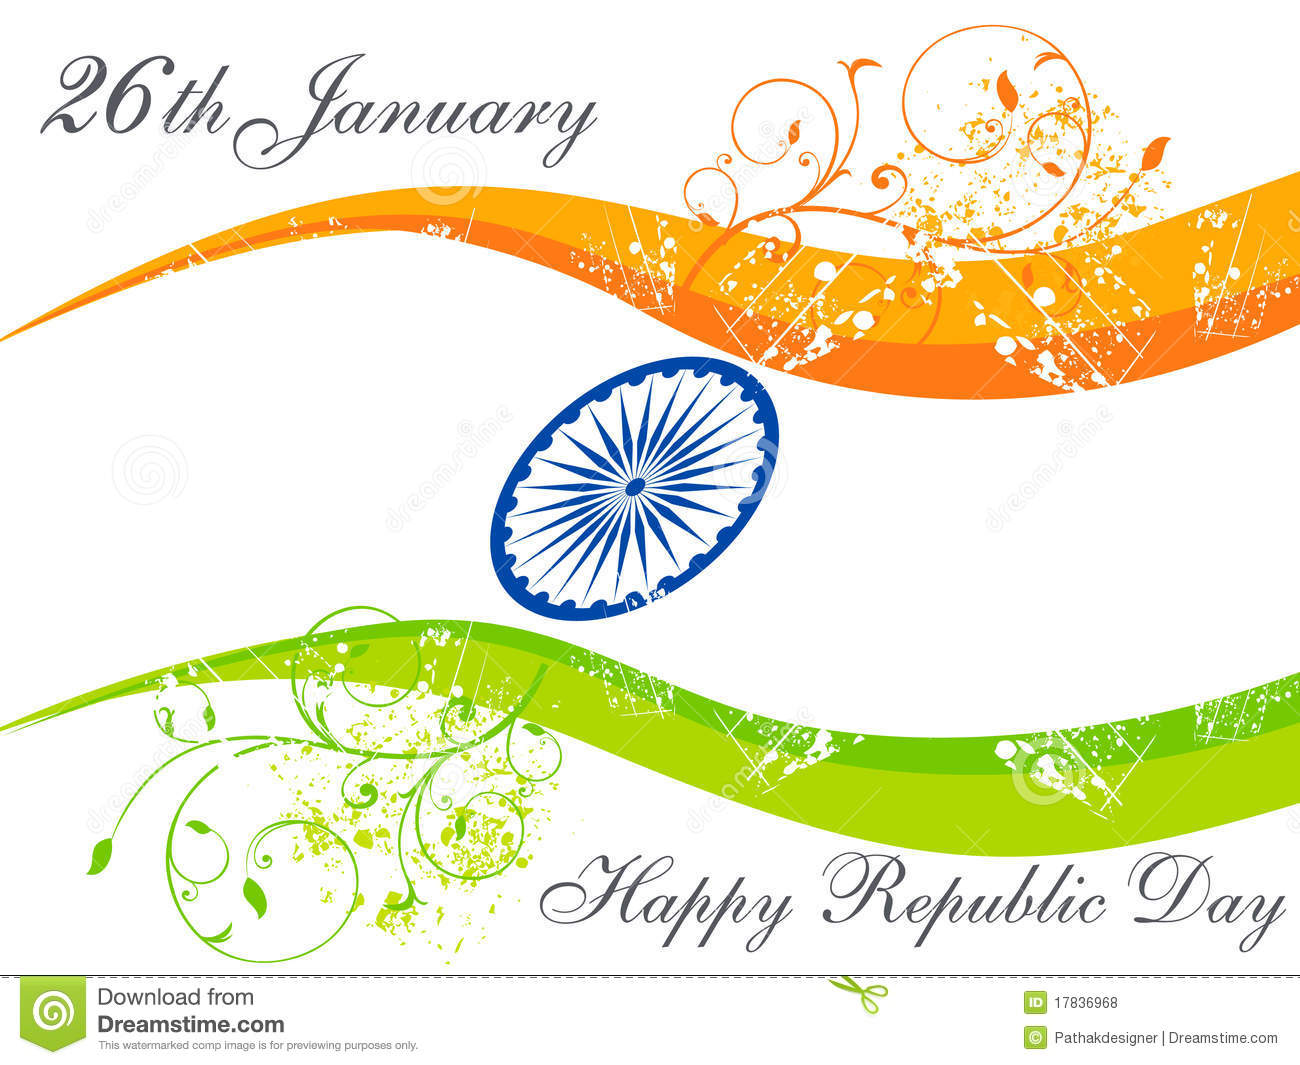 Wallpaper download republic day - Abstract Republic Day Wallpaper Royalty Free Stock Photos